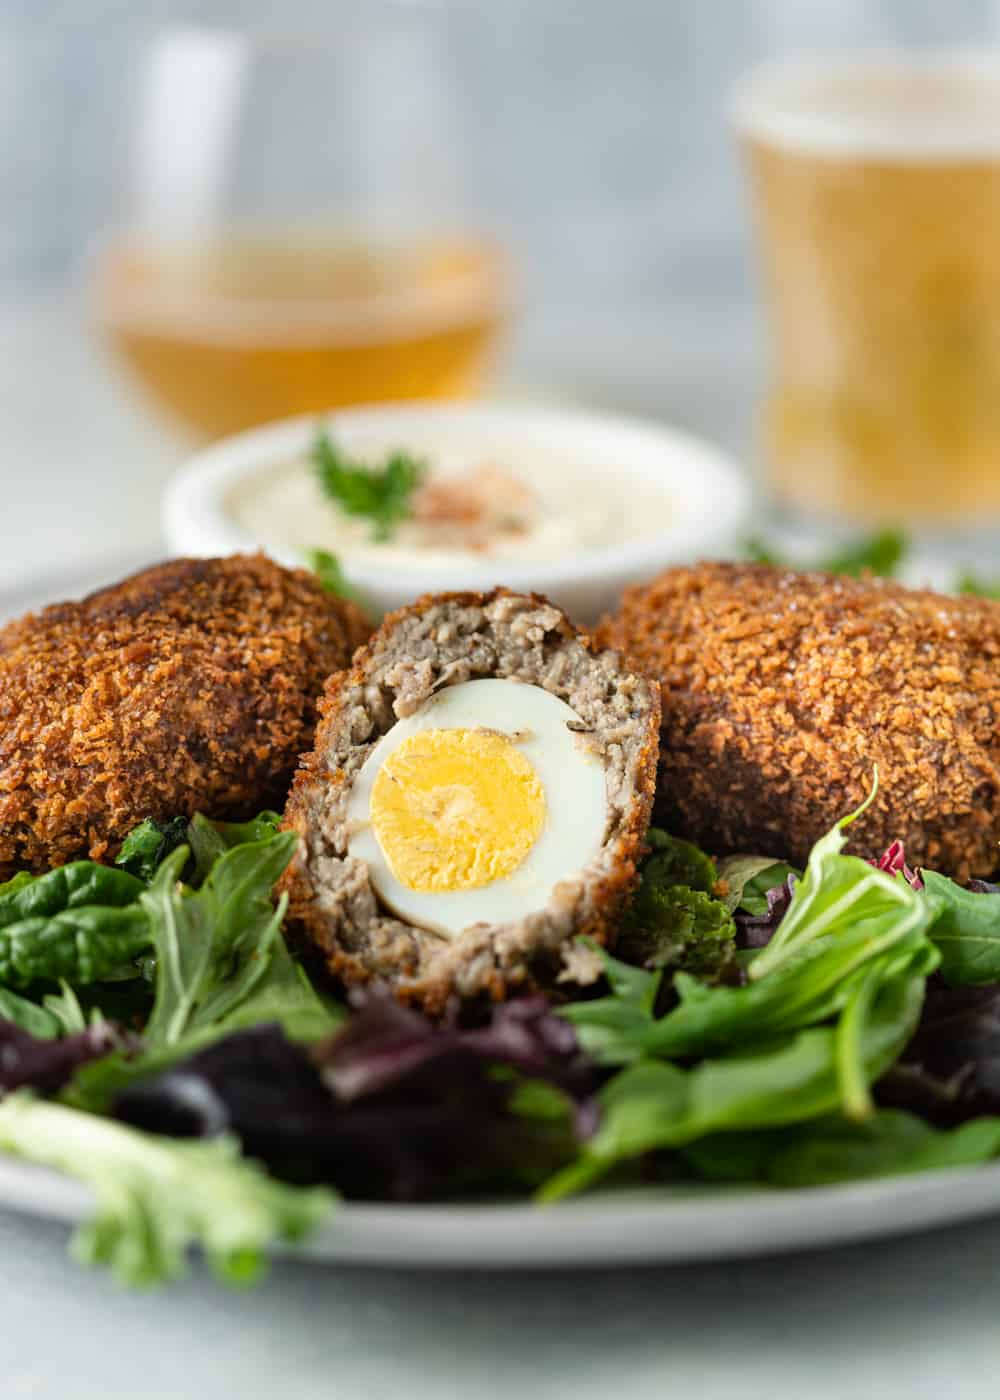 Scotch eggs on a plate with salad greens